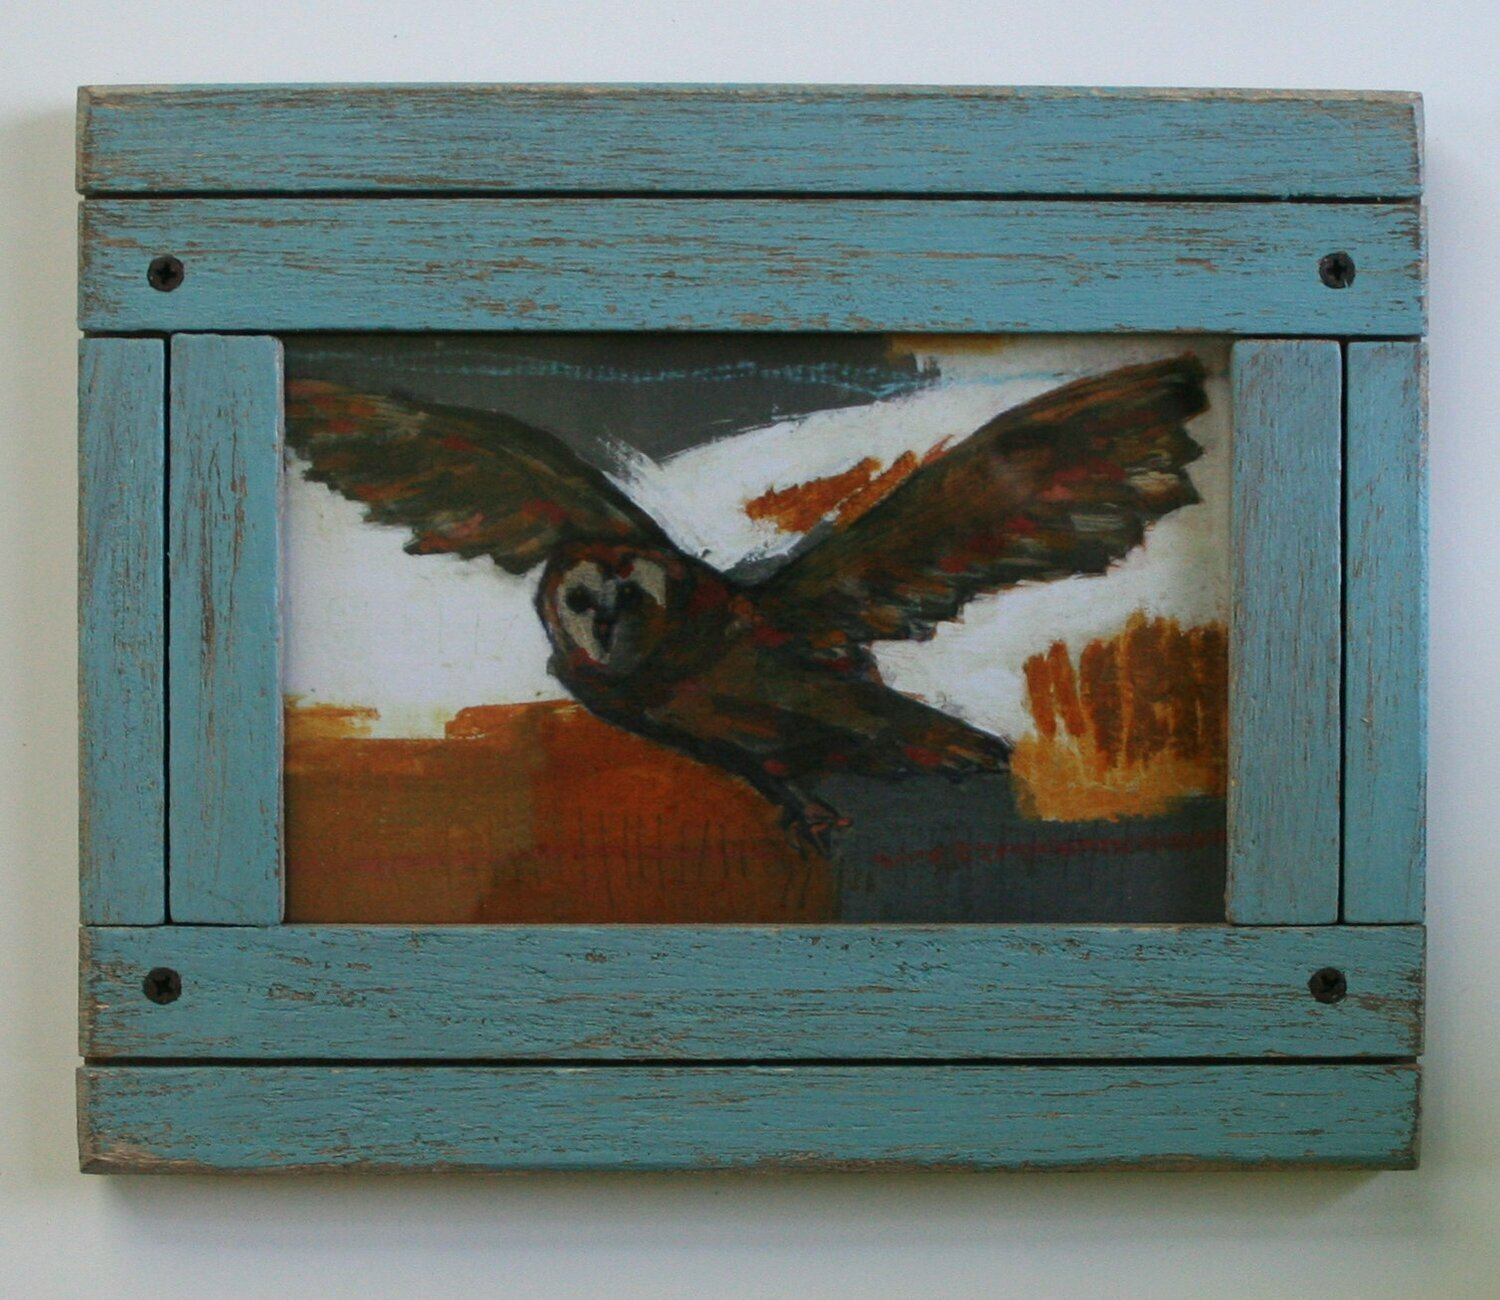 "framed flying owl bird print limited edition 4x6"" a2n2koon giclee in distressed wood frame in blue limited edition framed art prints"